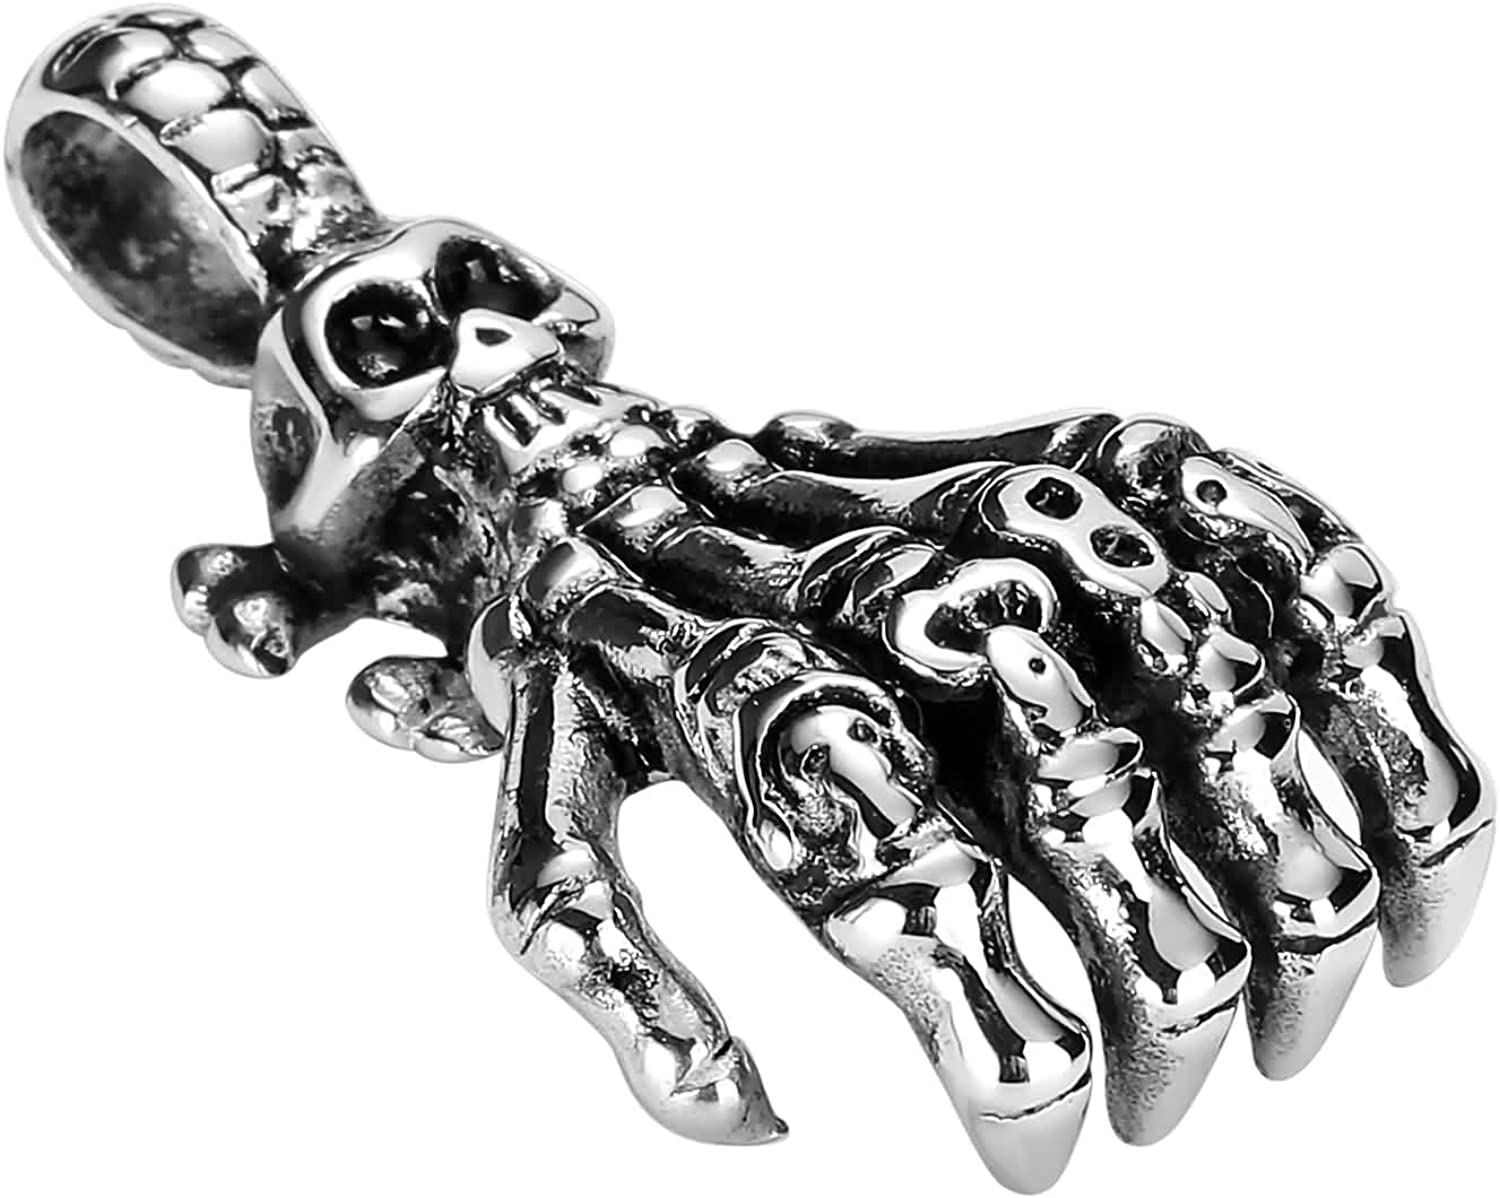 Aokarry Mens Skeleton Hand Pendant Necklace Hypoallergenic Stainless Steel Silver Black